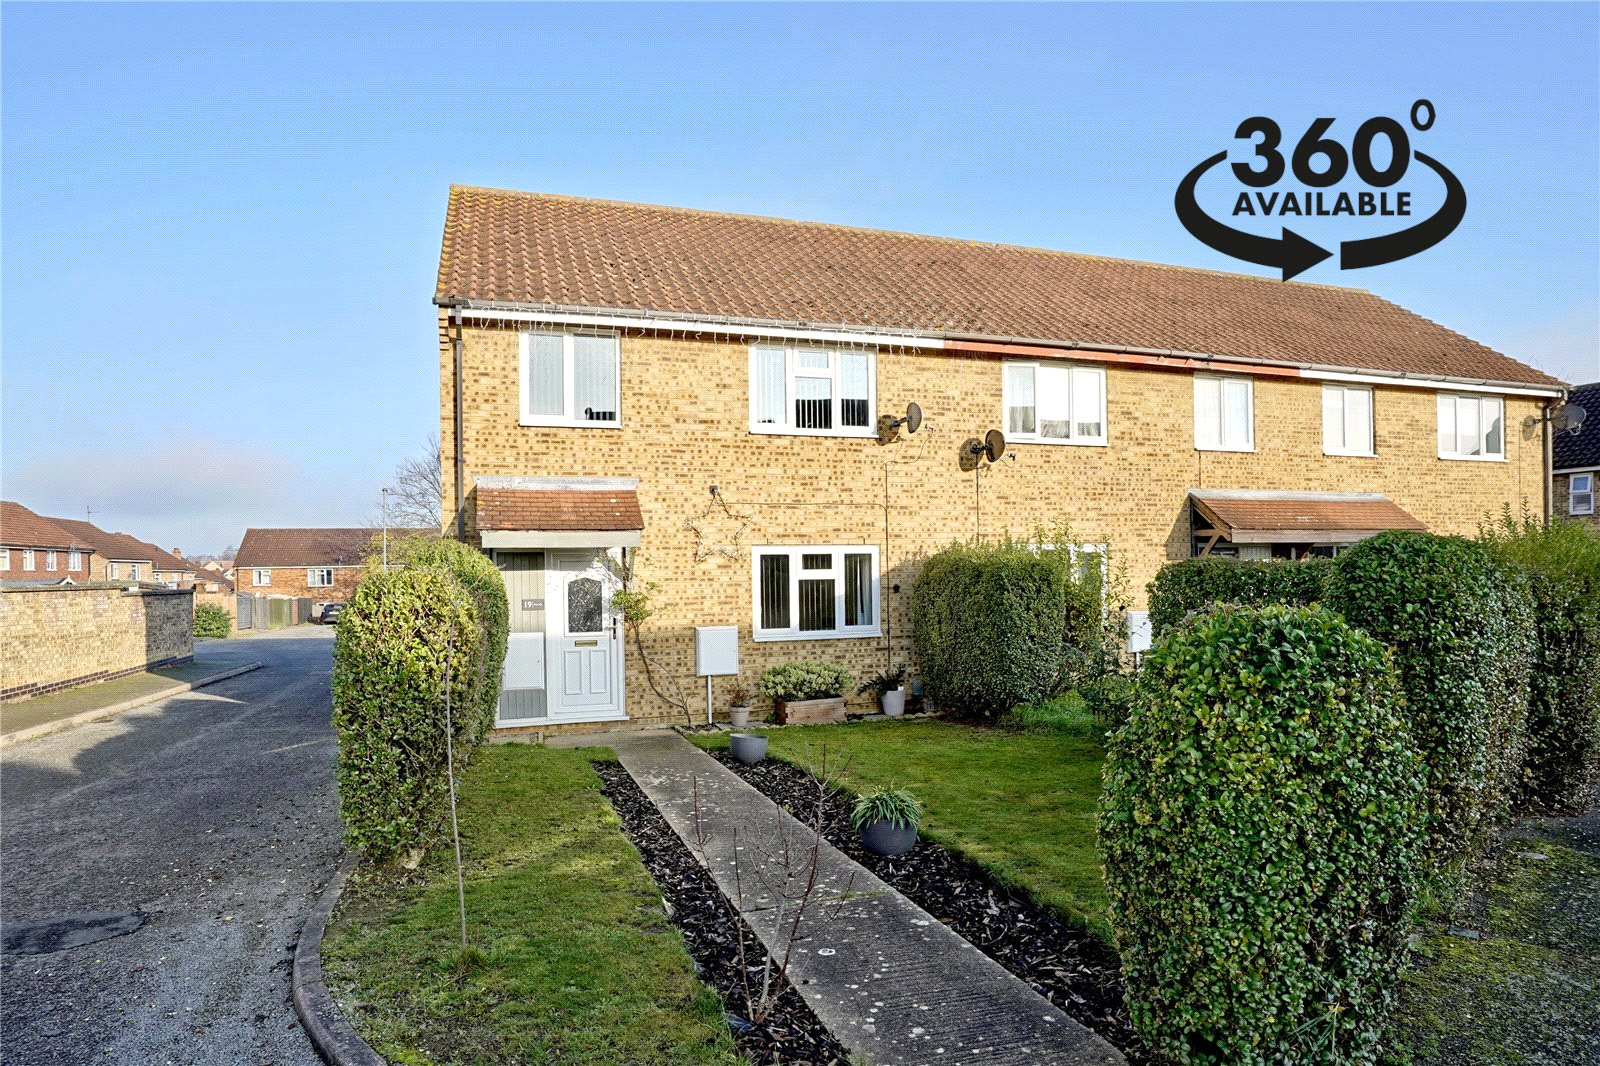 3 bed house for sale in Eaton Socon, PE19 8JR  - Property Image 1